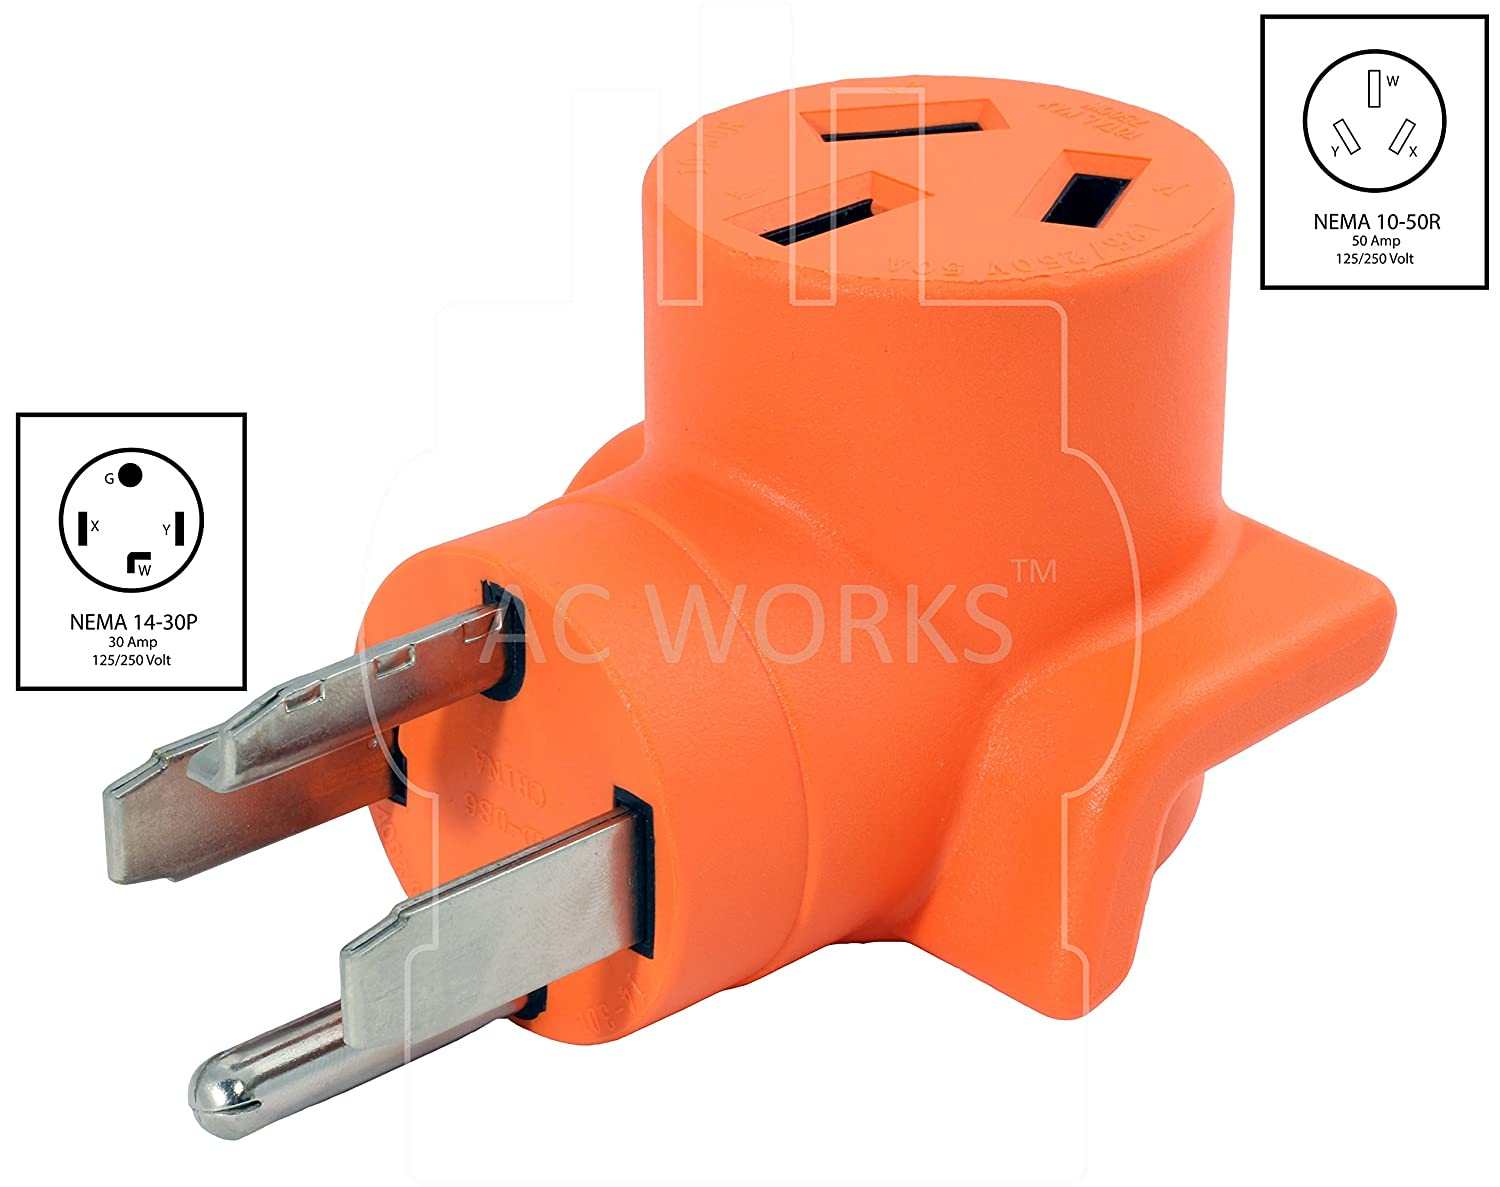 WD14301050 AC WORKS 30Amp 4-Prong 14-30P Dryer Plug to 10-50R 50Amp 125//250V Welder adapter AC Connectors